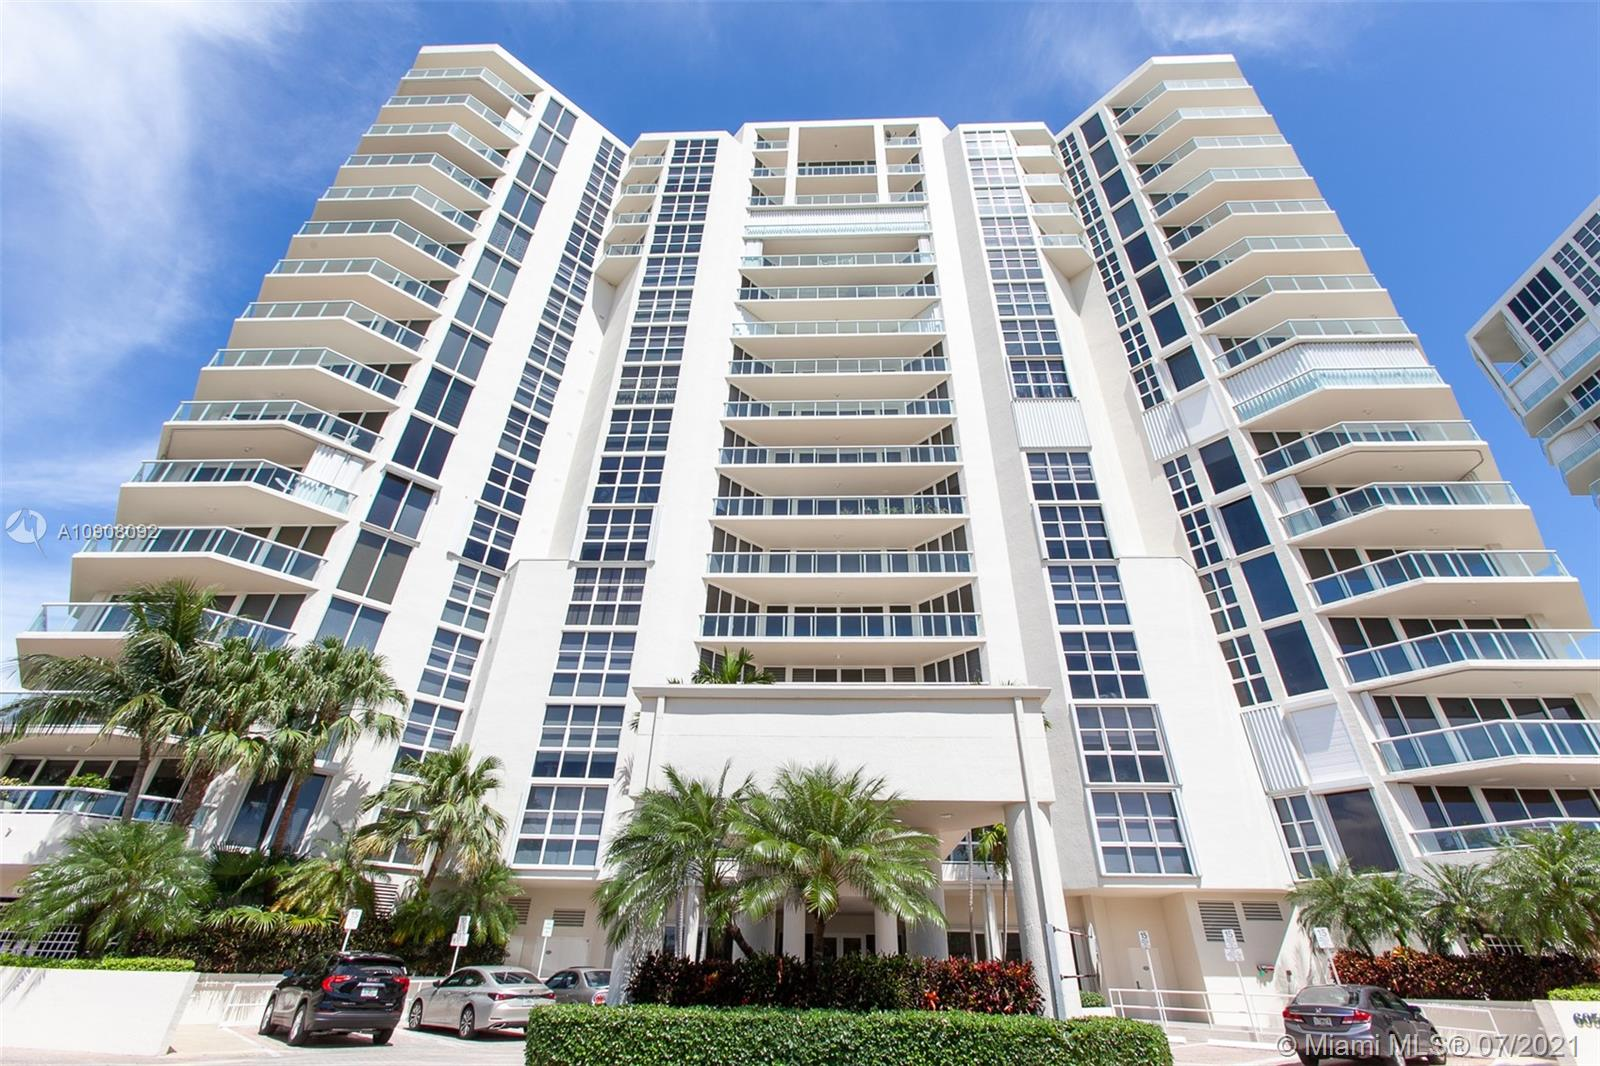 """Wow! Fabulous Double Unit In Renaissance On The Ocean! Enter Through Private Elevator Foyer From Double Doors And Immediately See Direct Sweeping Unobstructed Ocean Views That Will Take Your Breath Away. This 4 bd/ 4.5 ba Spacious Residence Boasts An Open, Over-sized Living Room And Open Kitchen. Light + Bright With Huge Terraces! Most Desirable Floor Plan In This """"One of a kind """" Home That Features A Split Floor Plan For Privacy. The Enormous Master Suite Has His And Hers Closets The Size Of Bedrooms & A Sitting Area/Media Room. A Jewel To Behold! Renaissance Sits Directly On The Ocean Surrounded By 8 Pristine Acres Of Property/ Beach. Five Star Amenities Include Oceanside Heated Pool, On-site Restaurant, Health Spa, Gym, Library, Tennis Courts, Valet, And Concierge! Has It All!"""